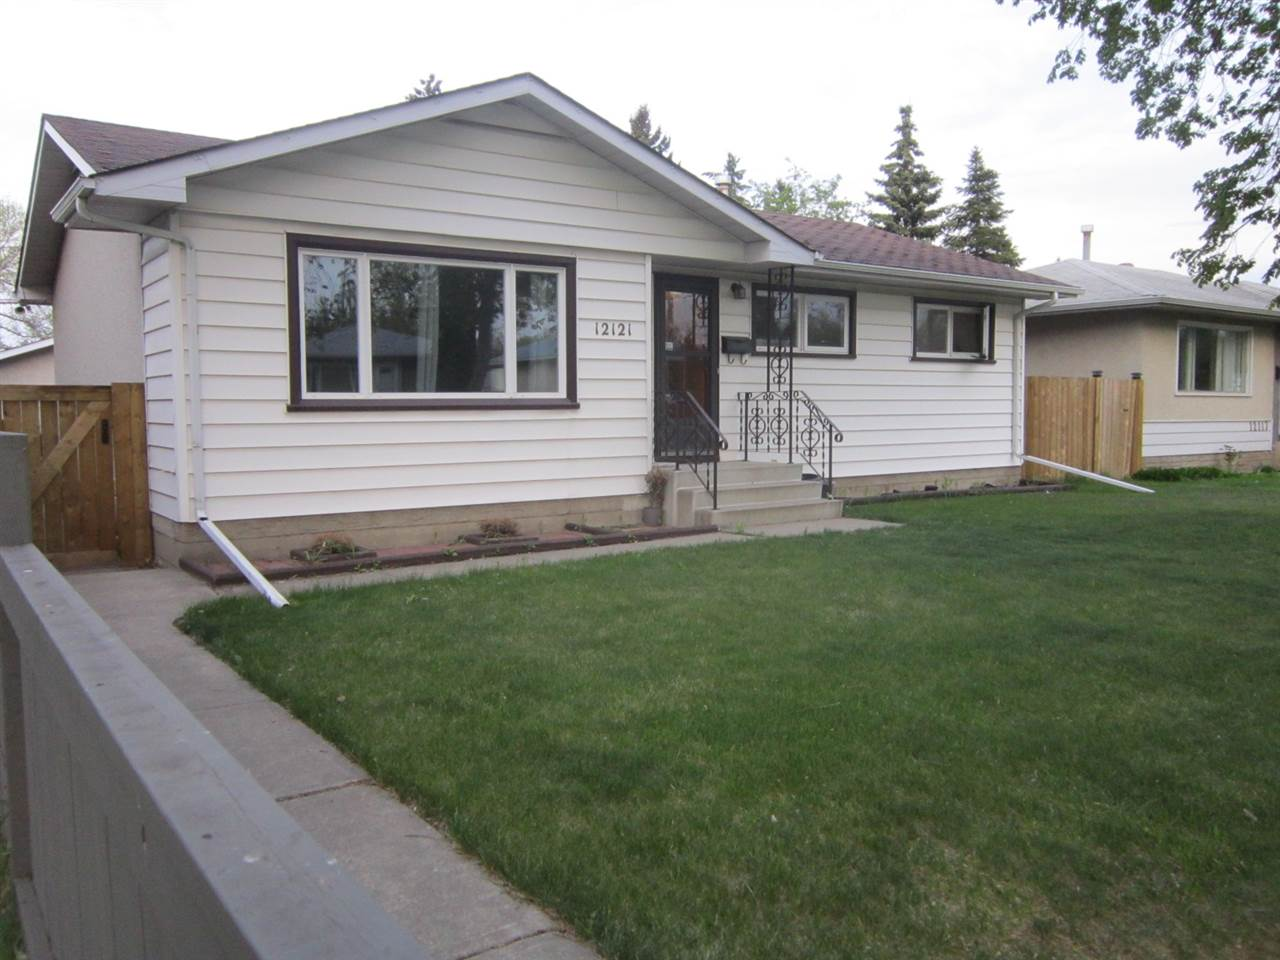 MLS® listing #E4158423 for sale located at 12121 38 Street NW